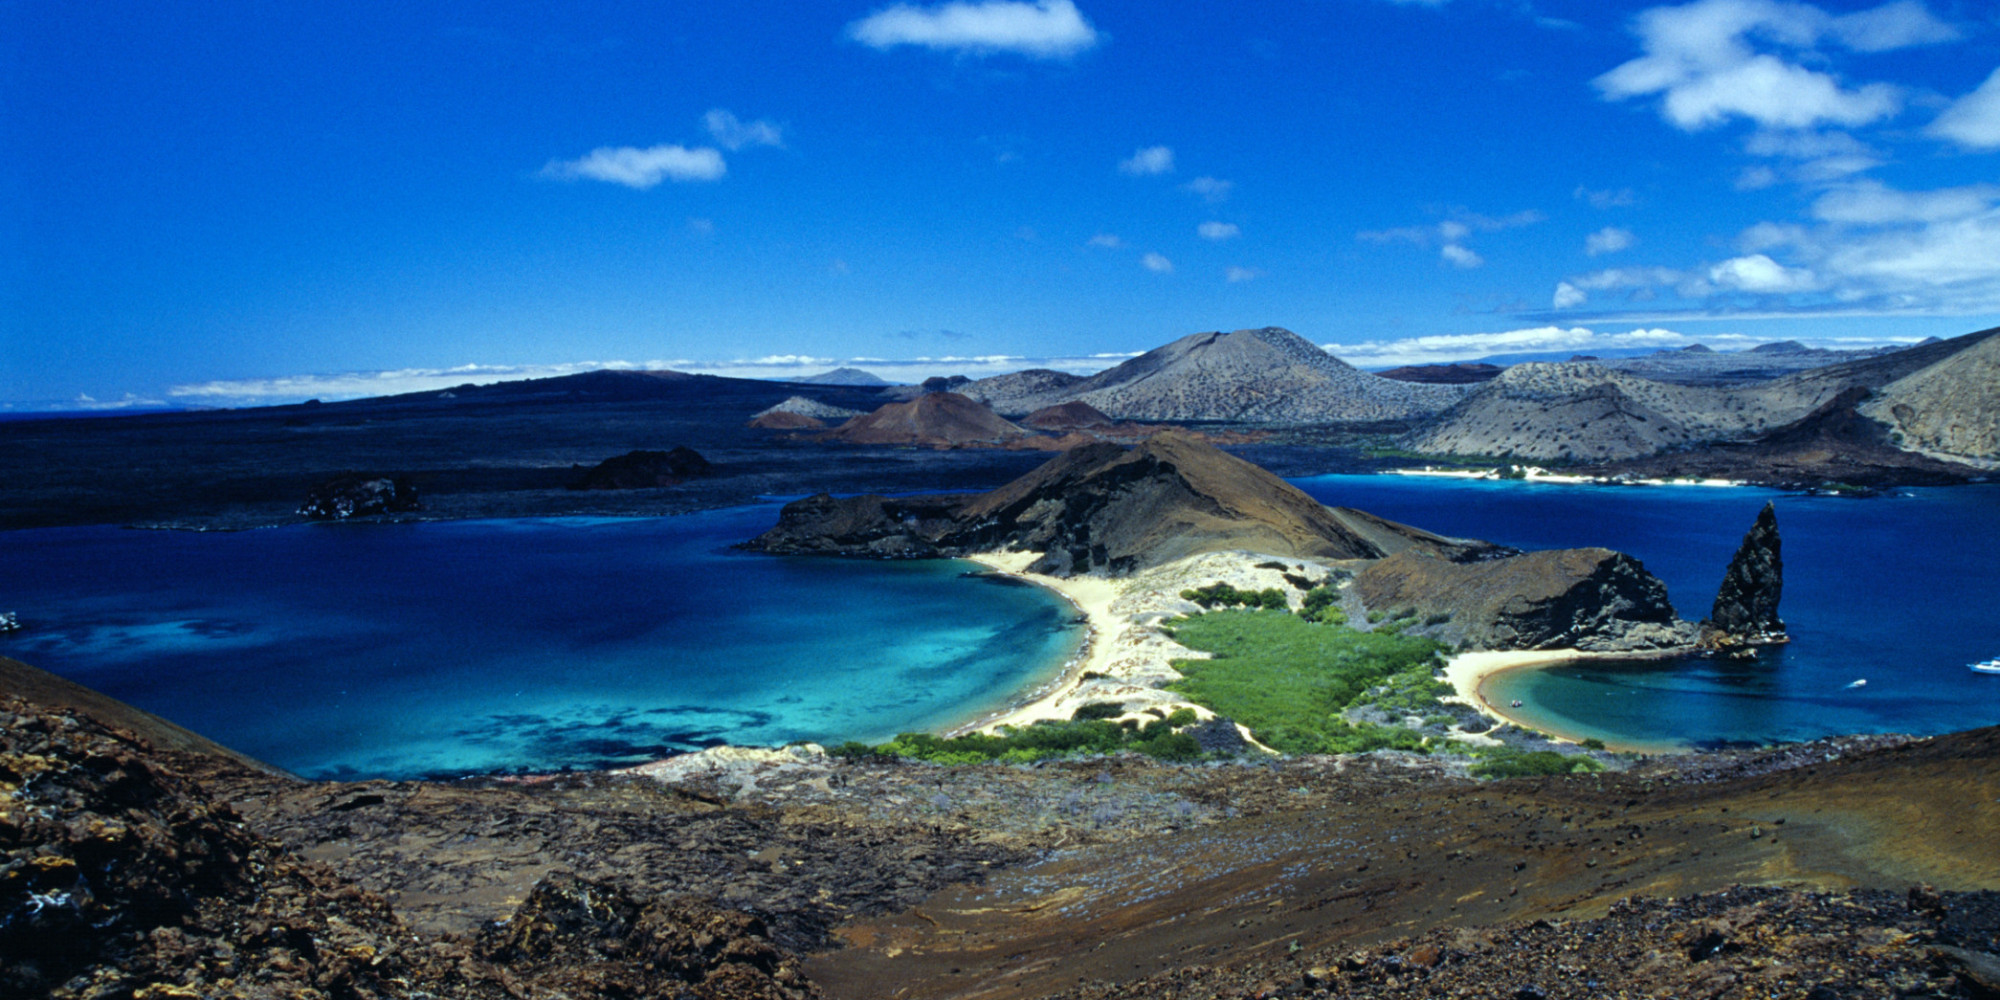 Galapagos Islands Attractive Places For Tourism